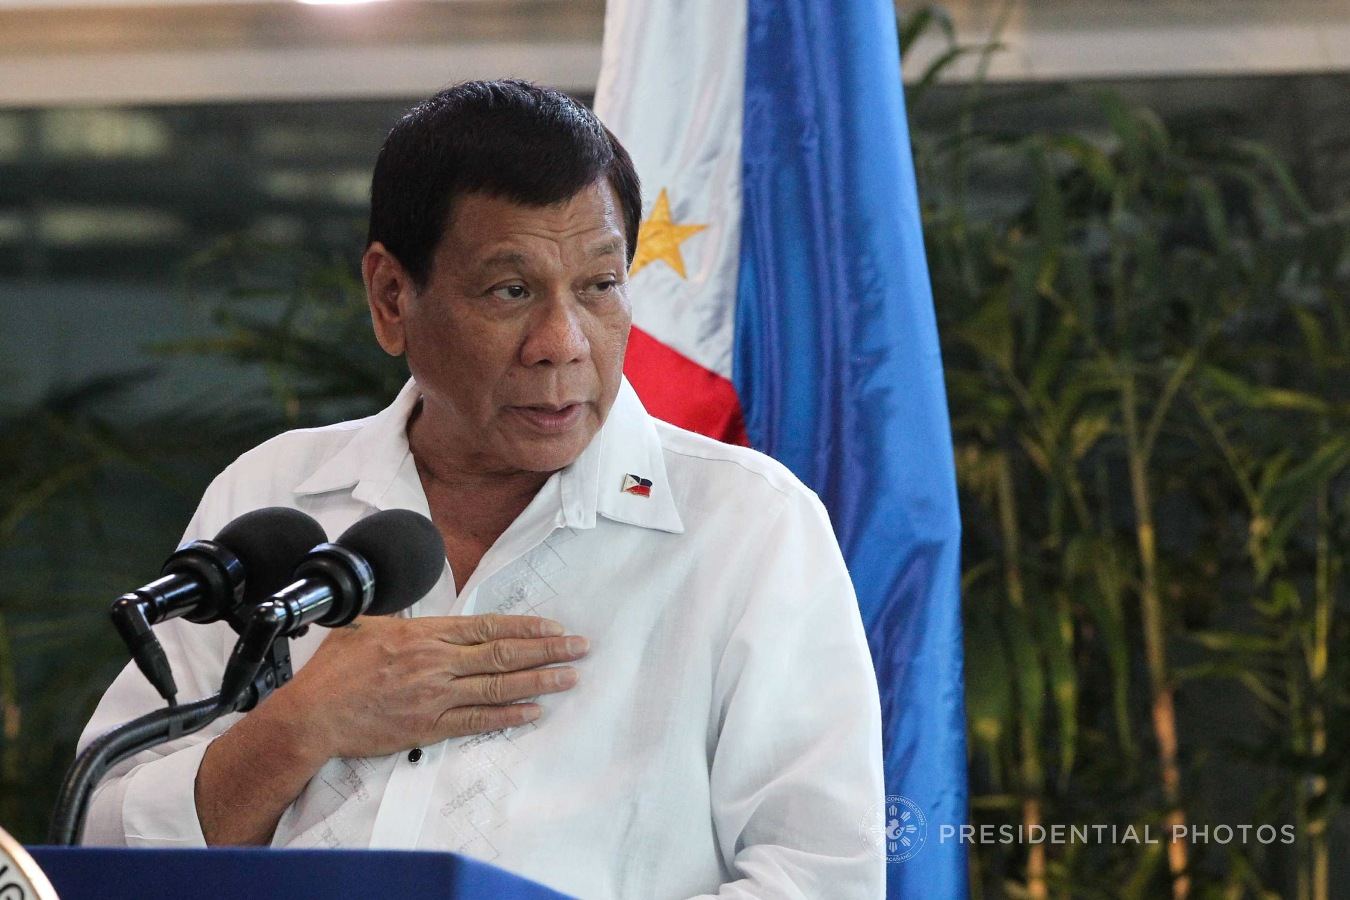 President Duterte Claims He Stabbed Someone to Death at 16